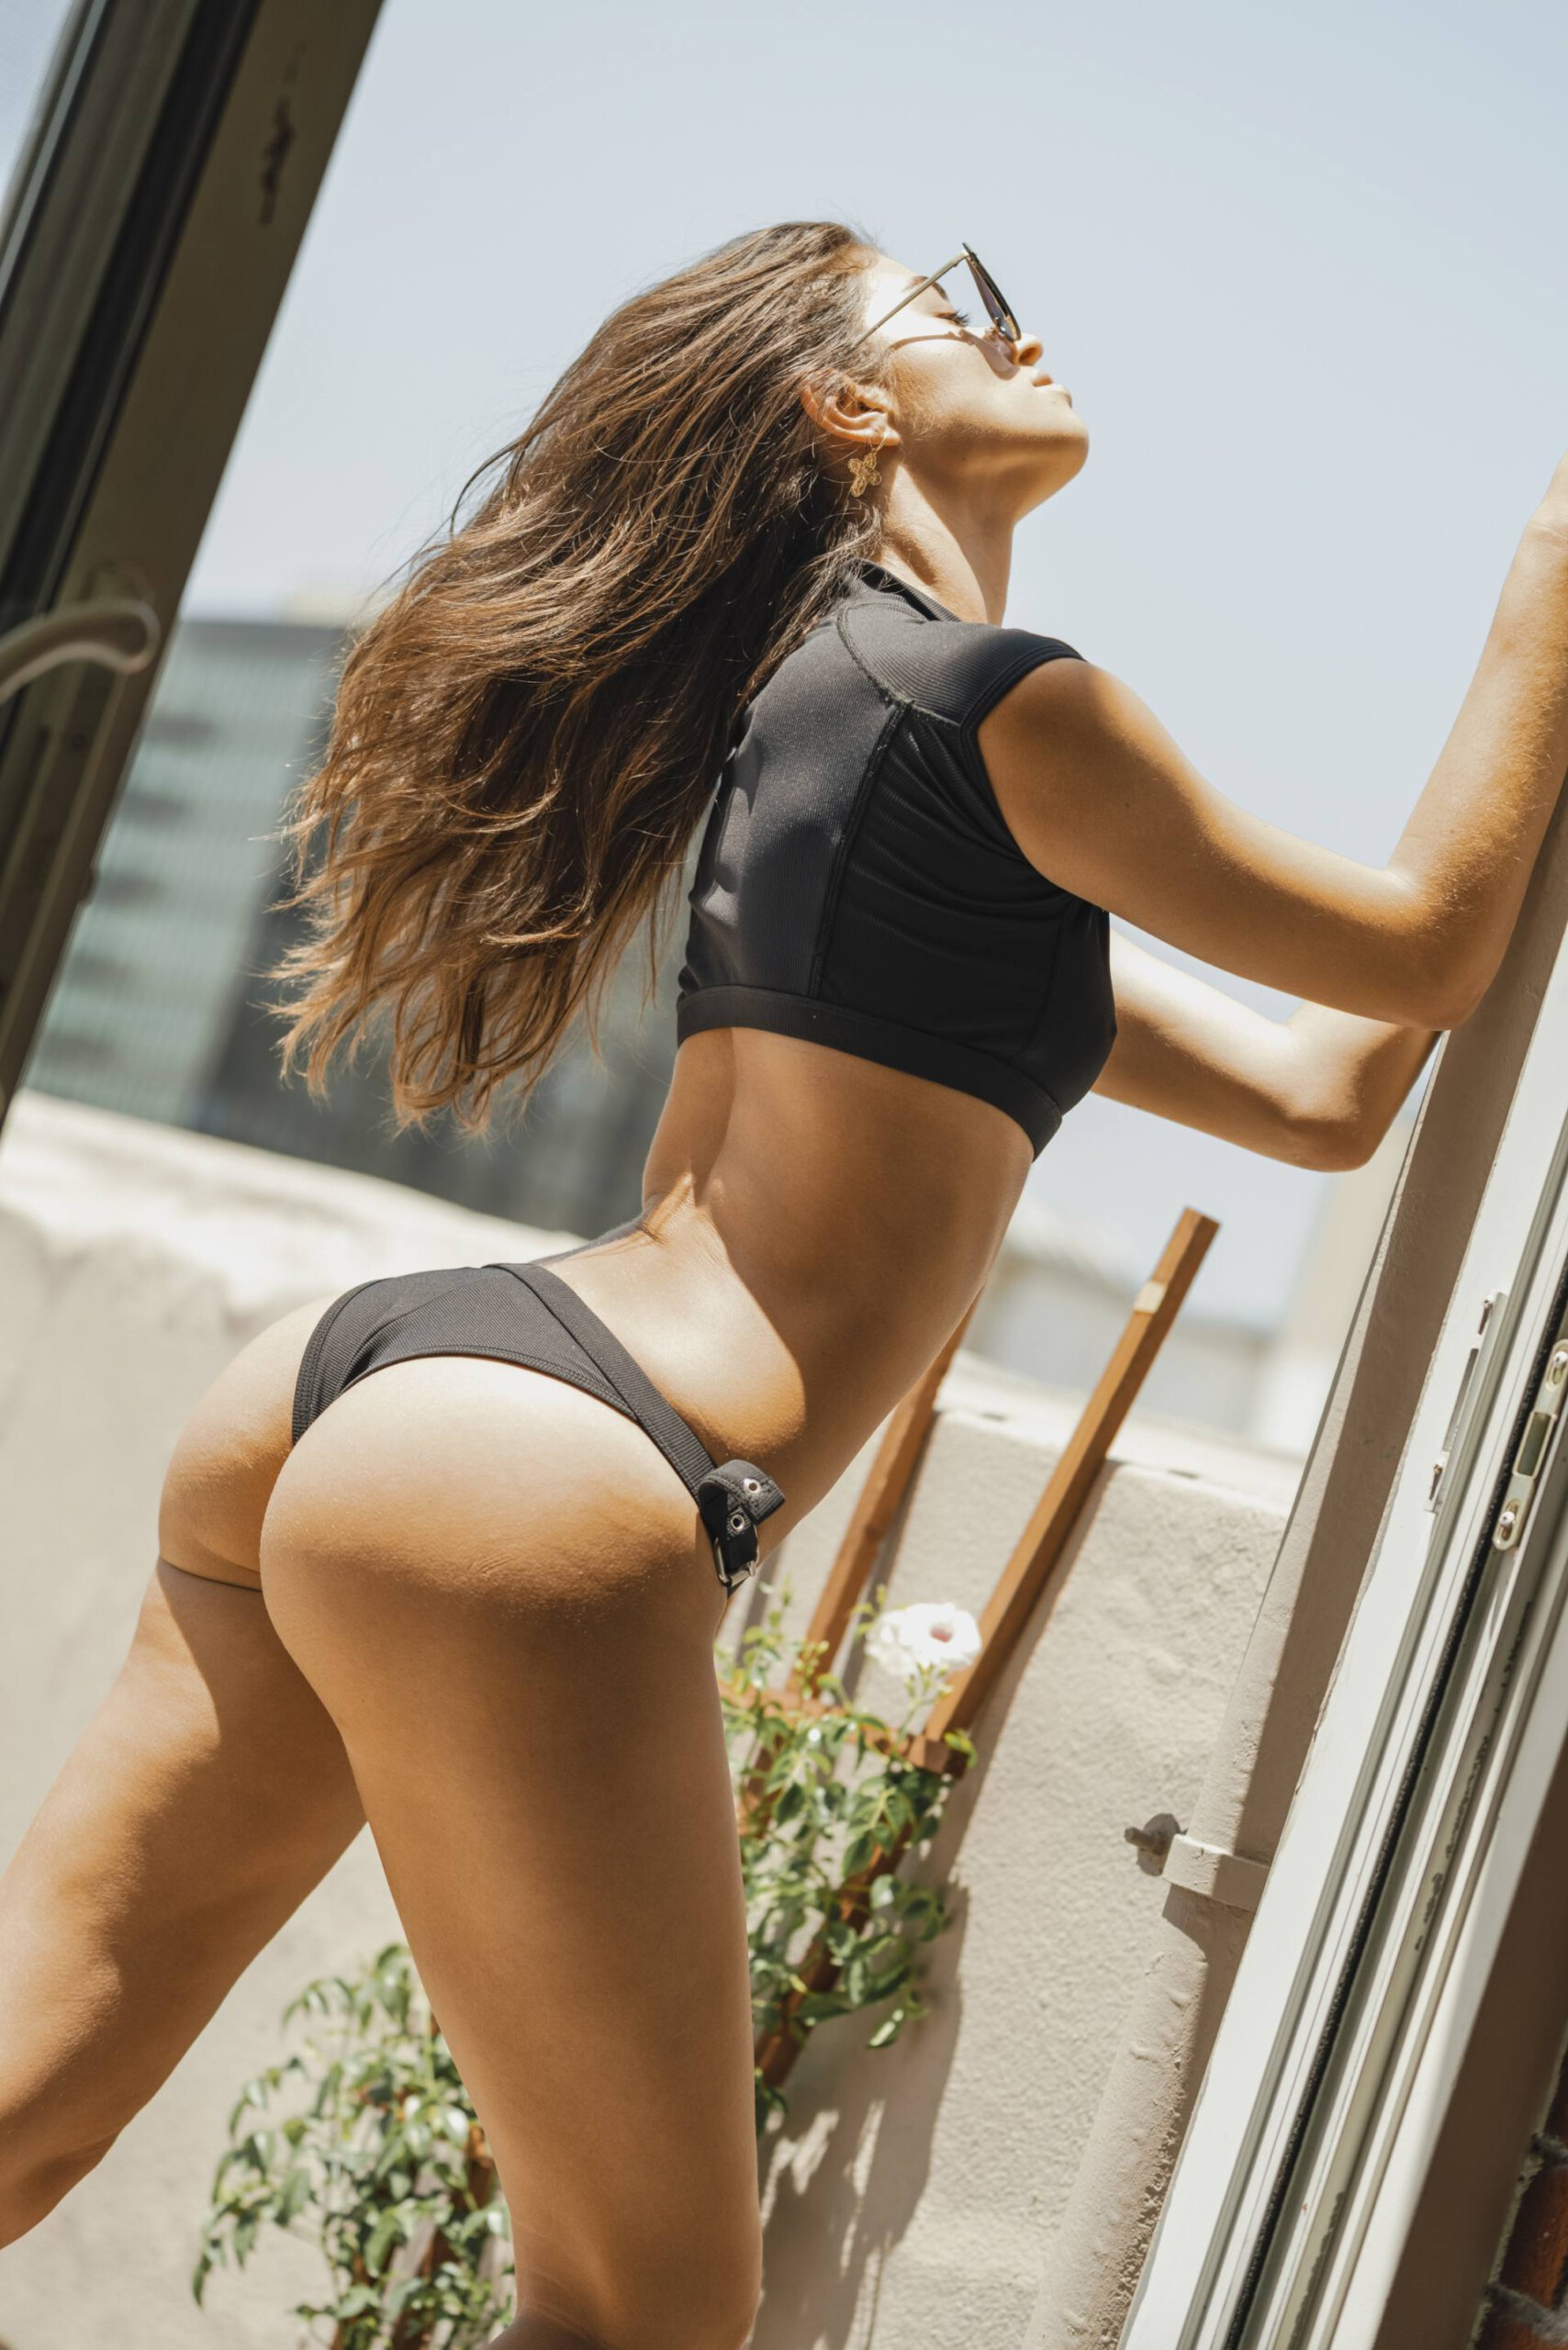 Daniela Lopez Osorio Perfect Body In Racy Photos